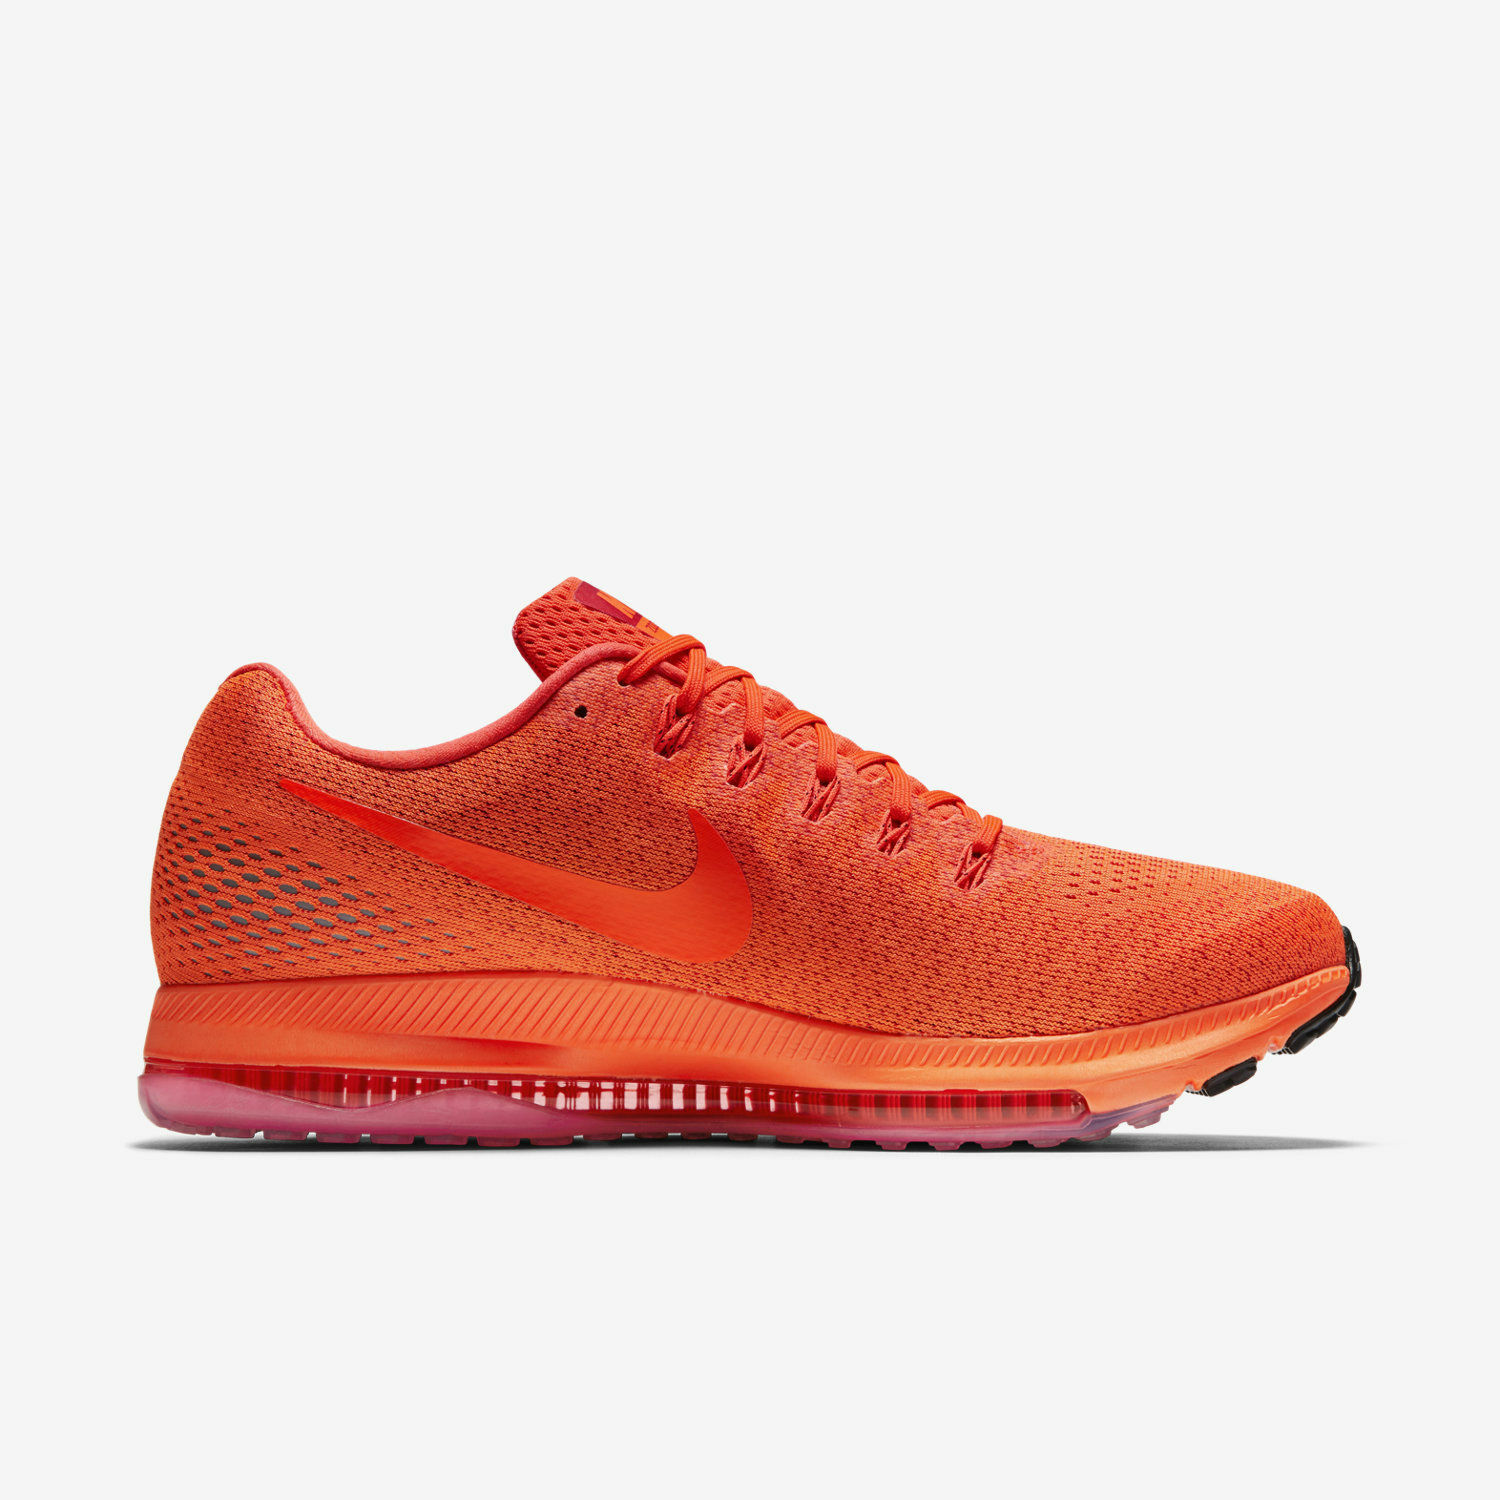 Nike Zoom All Out Low Total Crimson 878670-800 Mens Sz 11